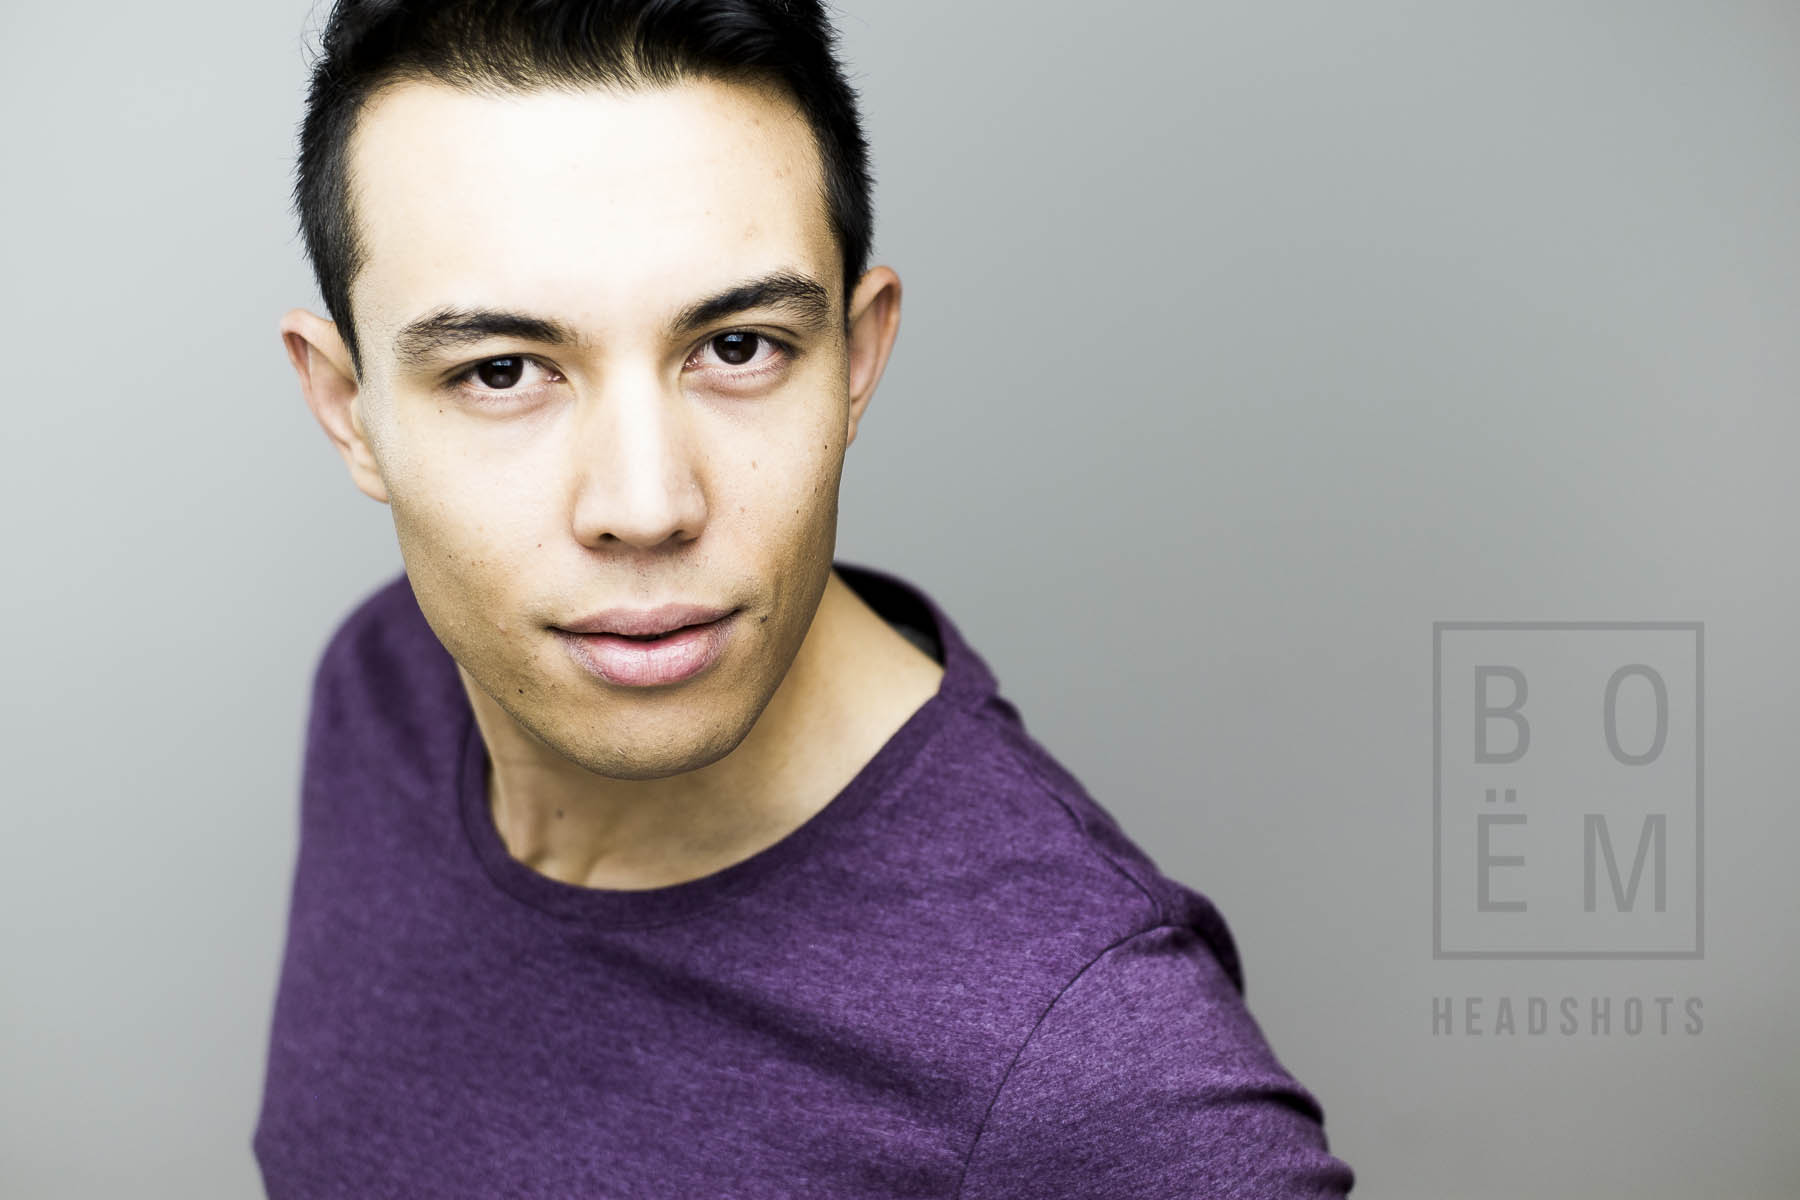 A professional headshot for George, an Engineer-slash-model in studio by Andre Goosen for Boem Headshot, the premier headshot photographer in Adelaide. Get yours done now.